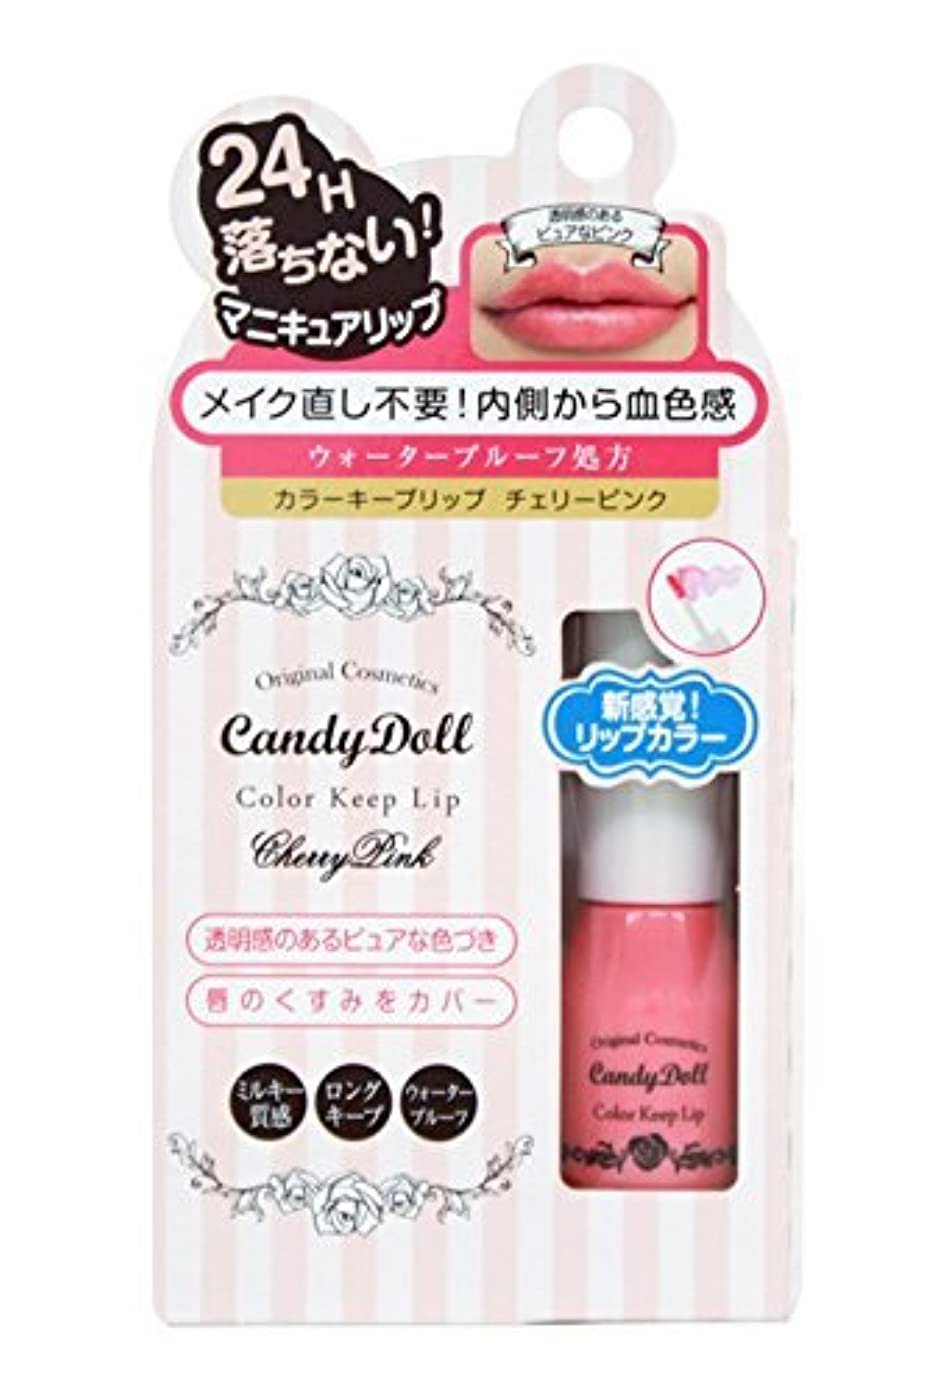 T-Garden CandyDoll カラーキープリップ チェリーピンク